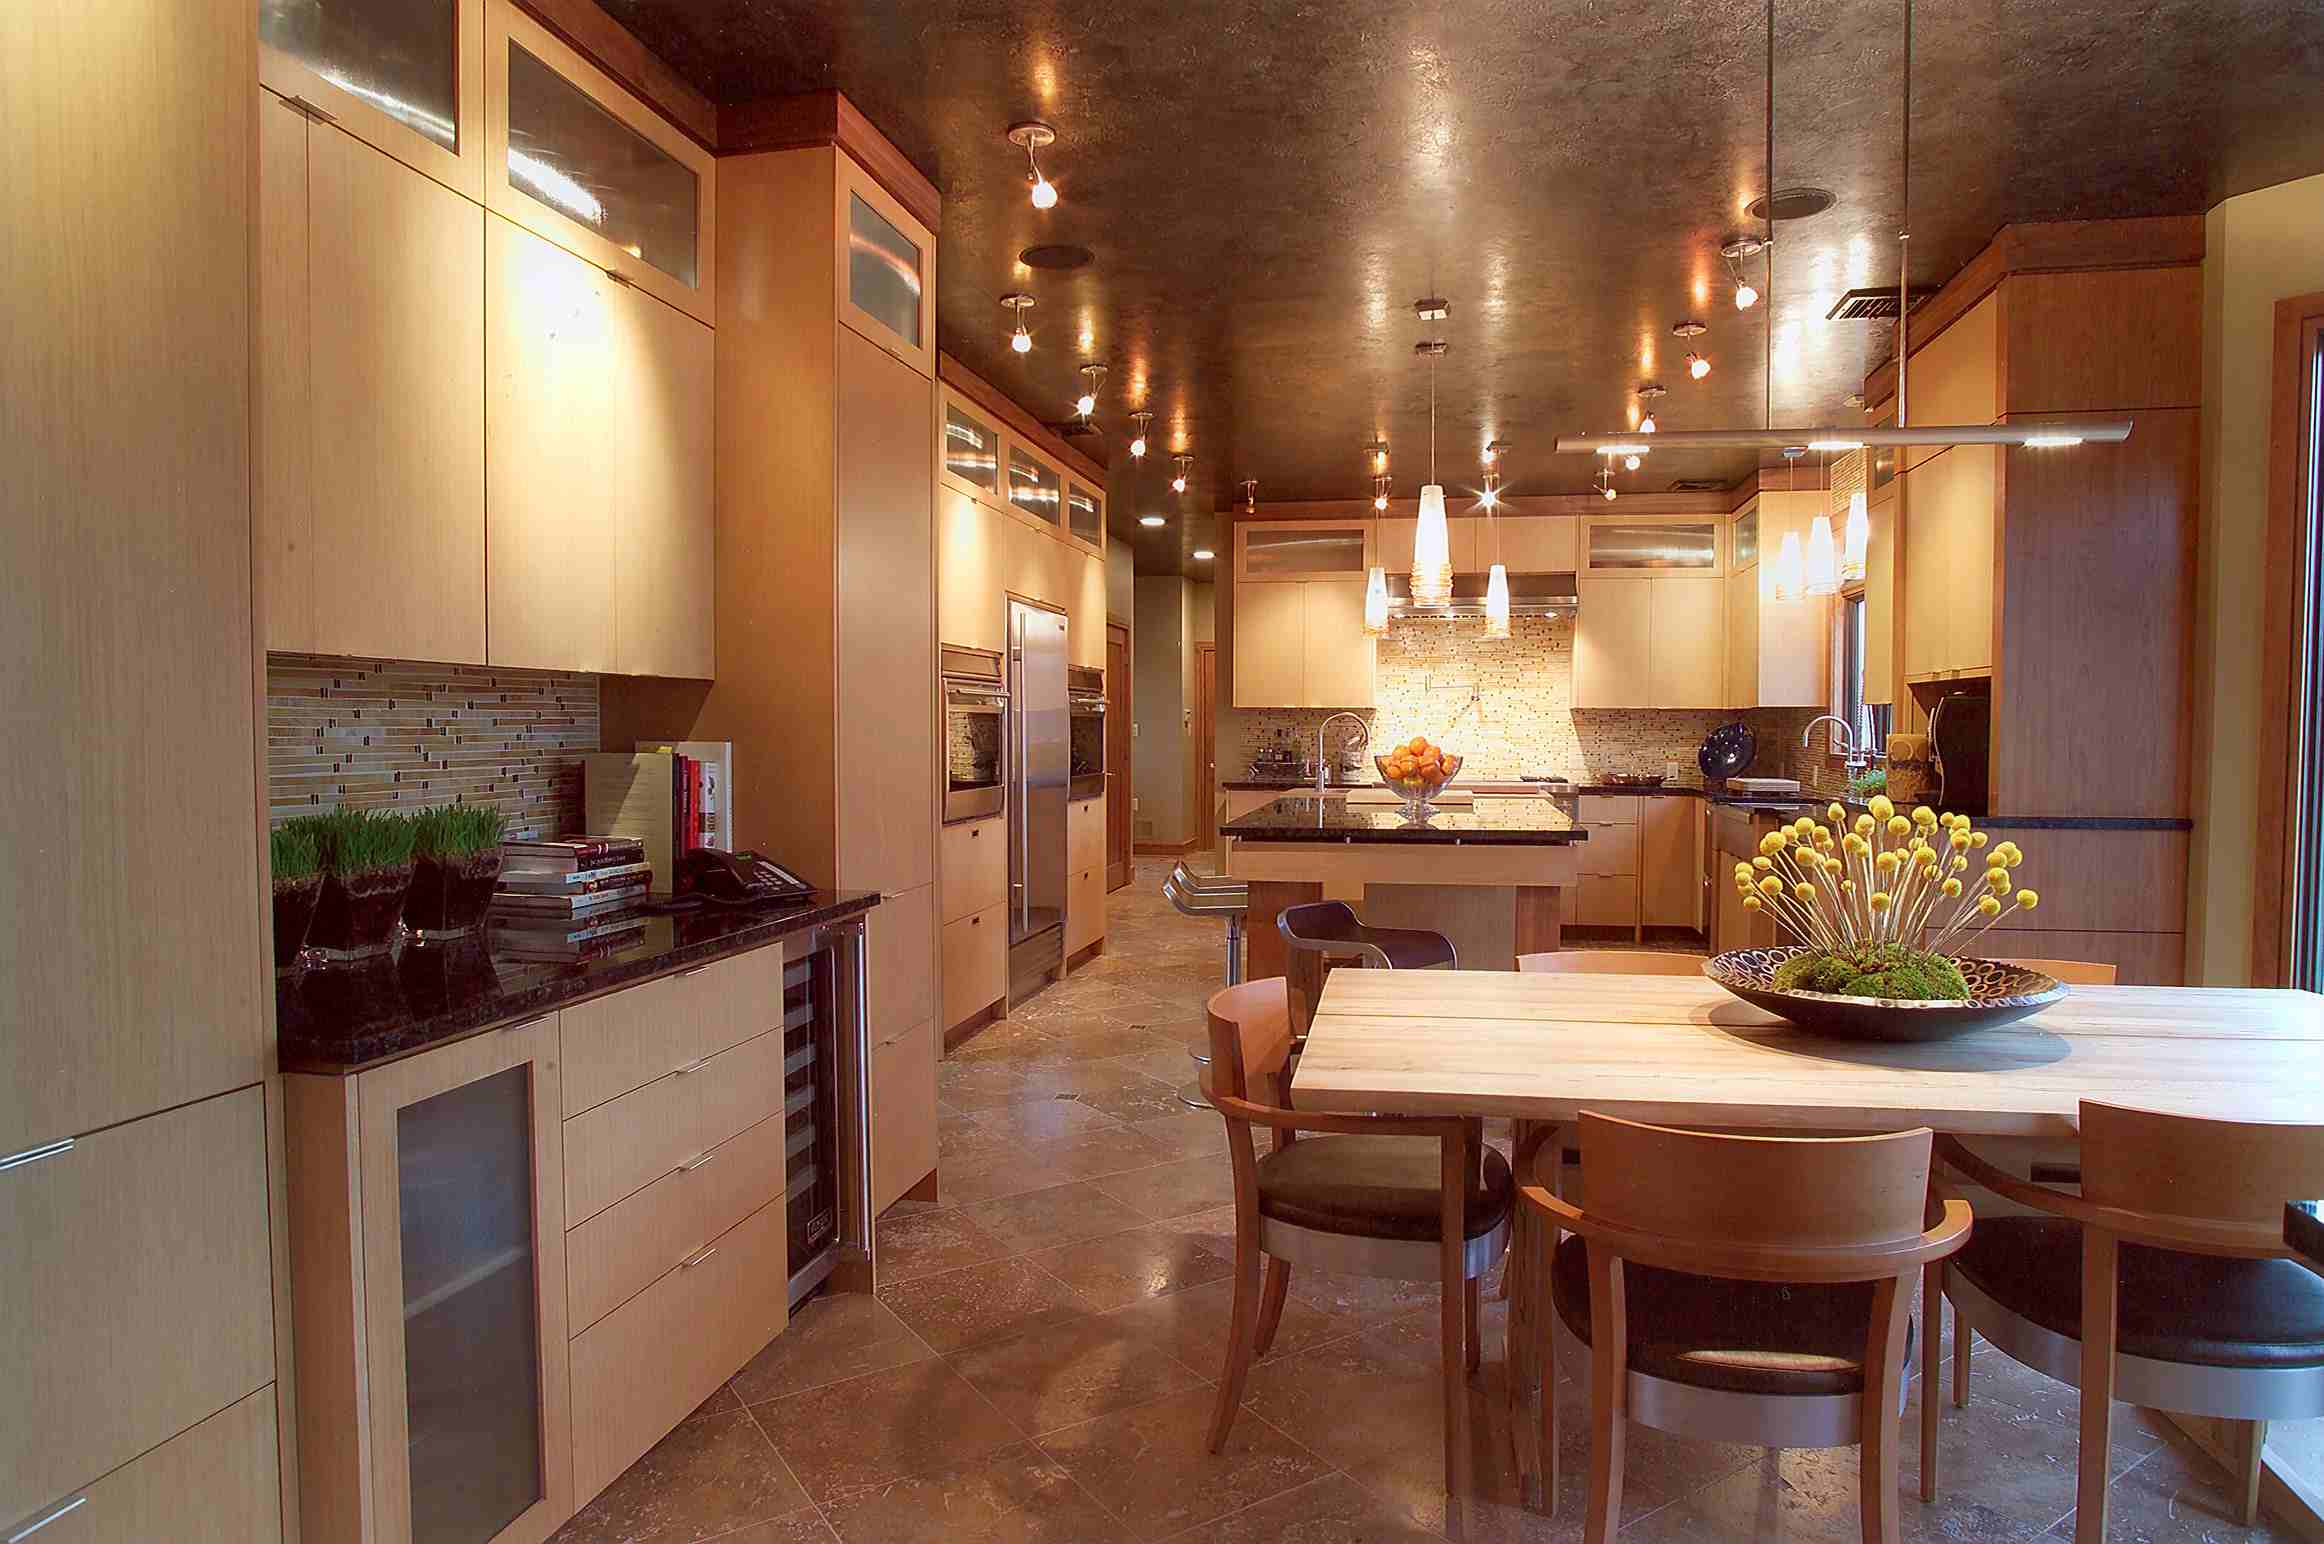 Singer kitchens cabinets to go new orleans stocked cabinets singer - Singer Kitchen Cabinets Sri Lanka